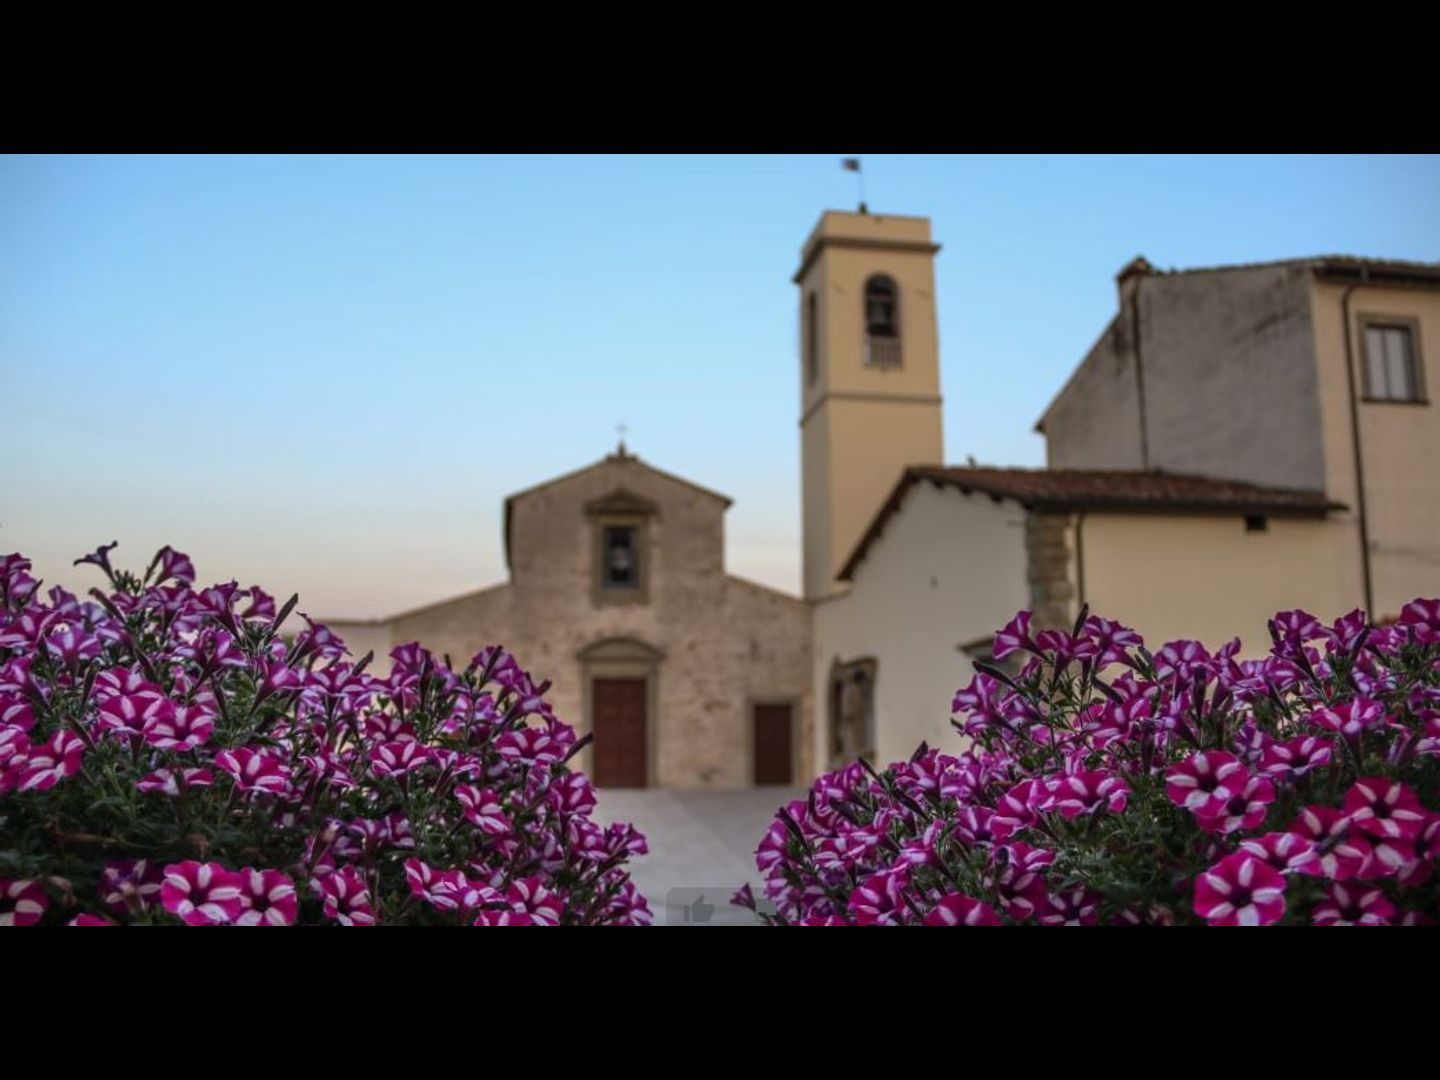 A building with a purple flower at Bed & Breakfast LA PIEVE.